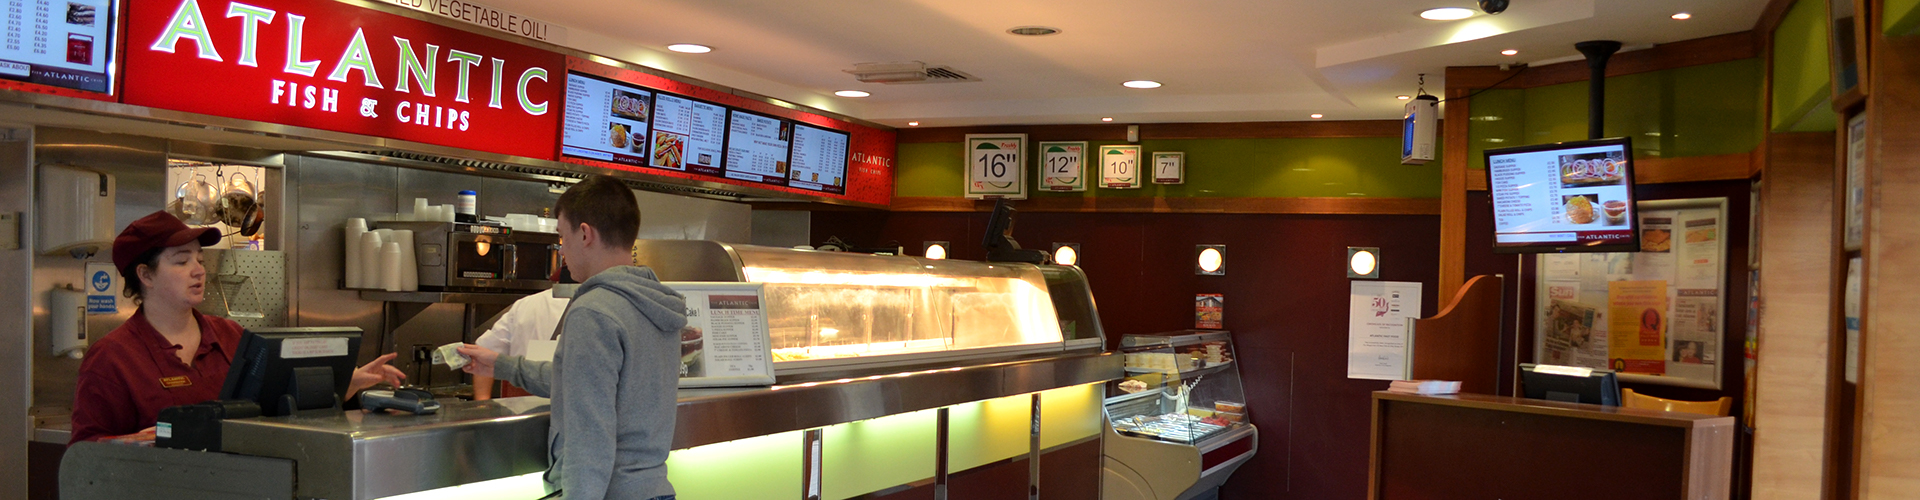 image of atlantic chip shop interior